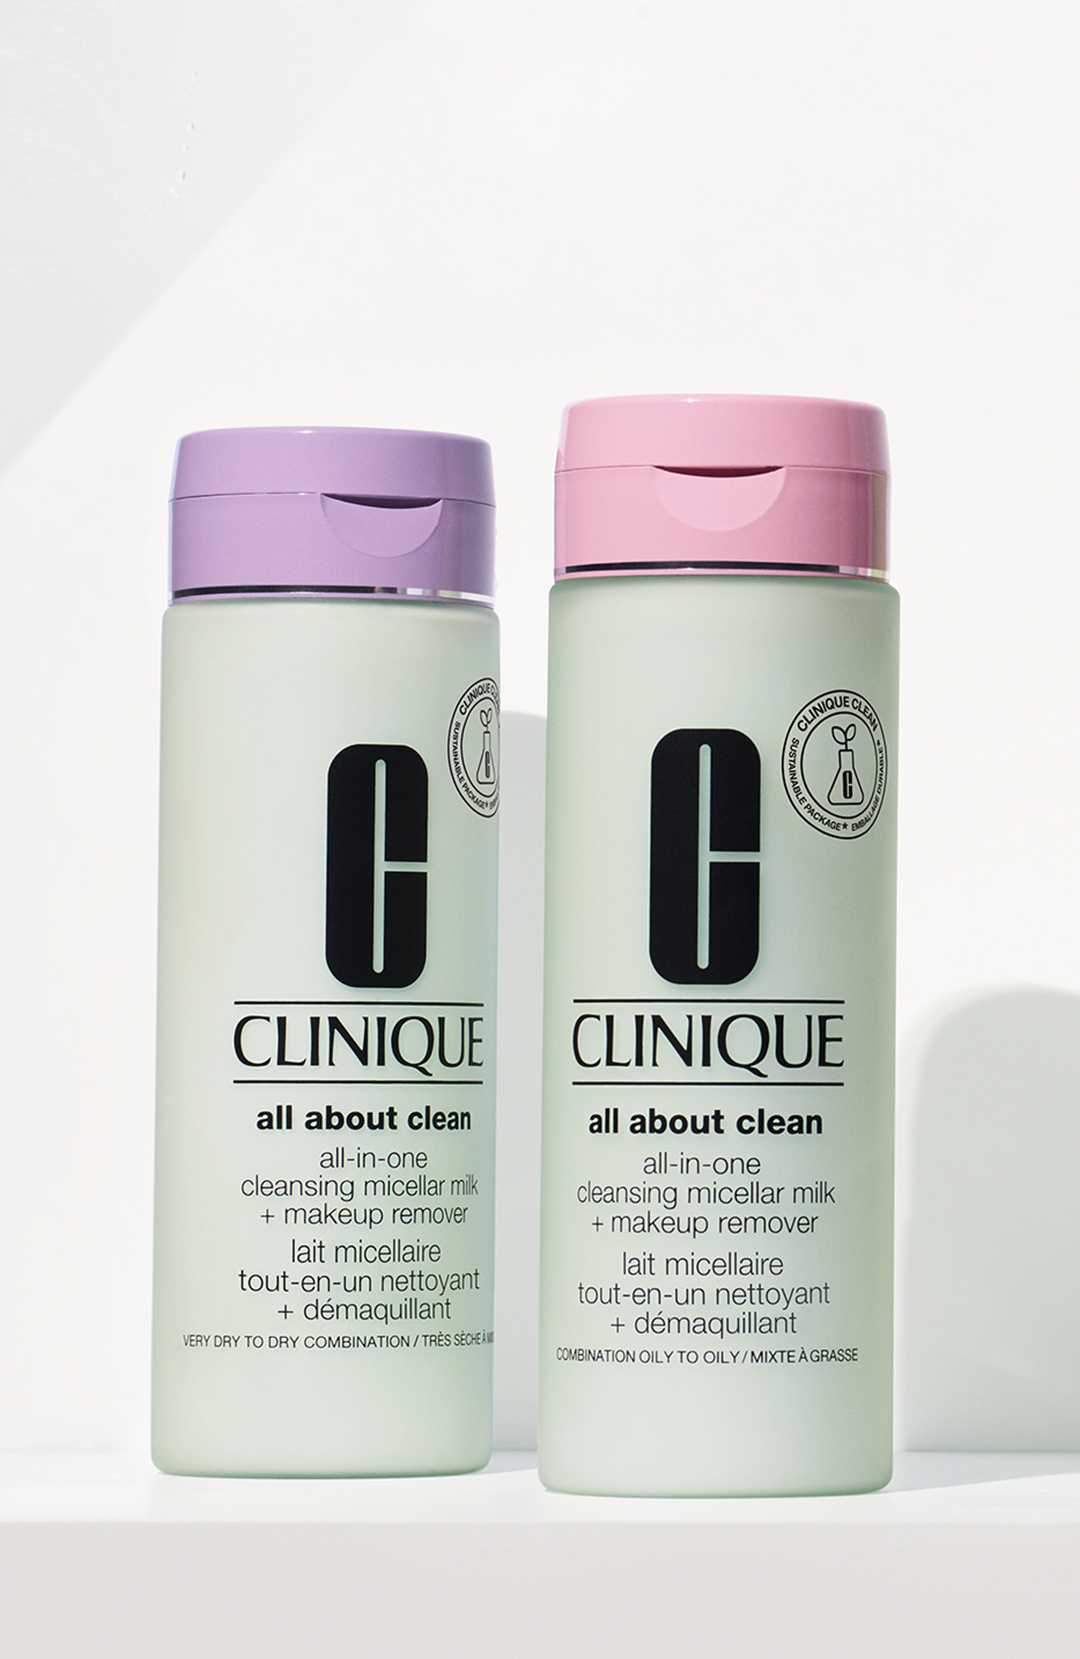 Очищающие средства All-In-One Cleansing Micellar Milk + Makeup Remover, Clinique